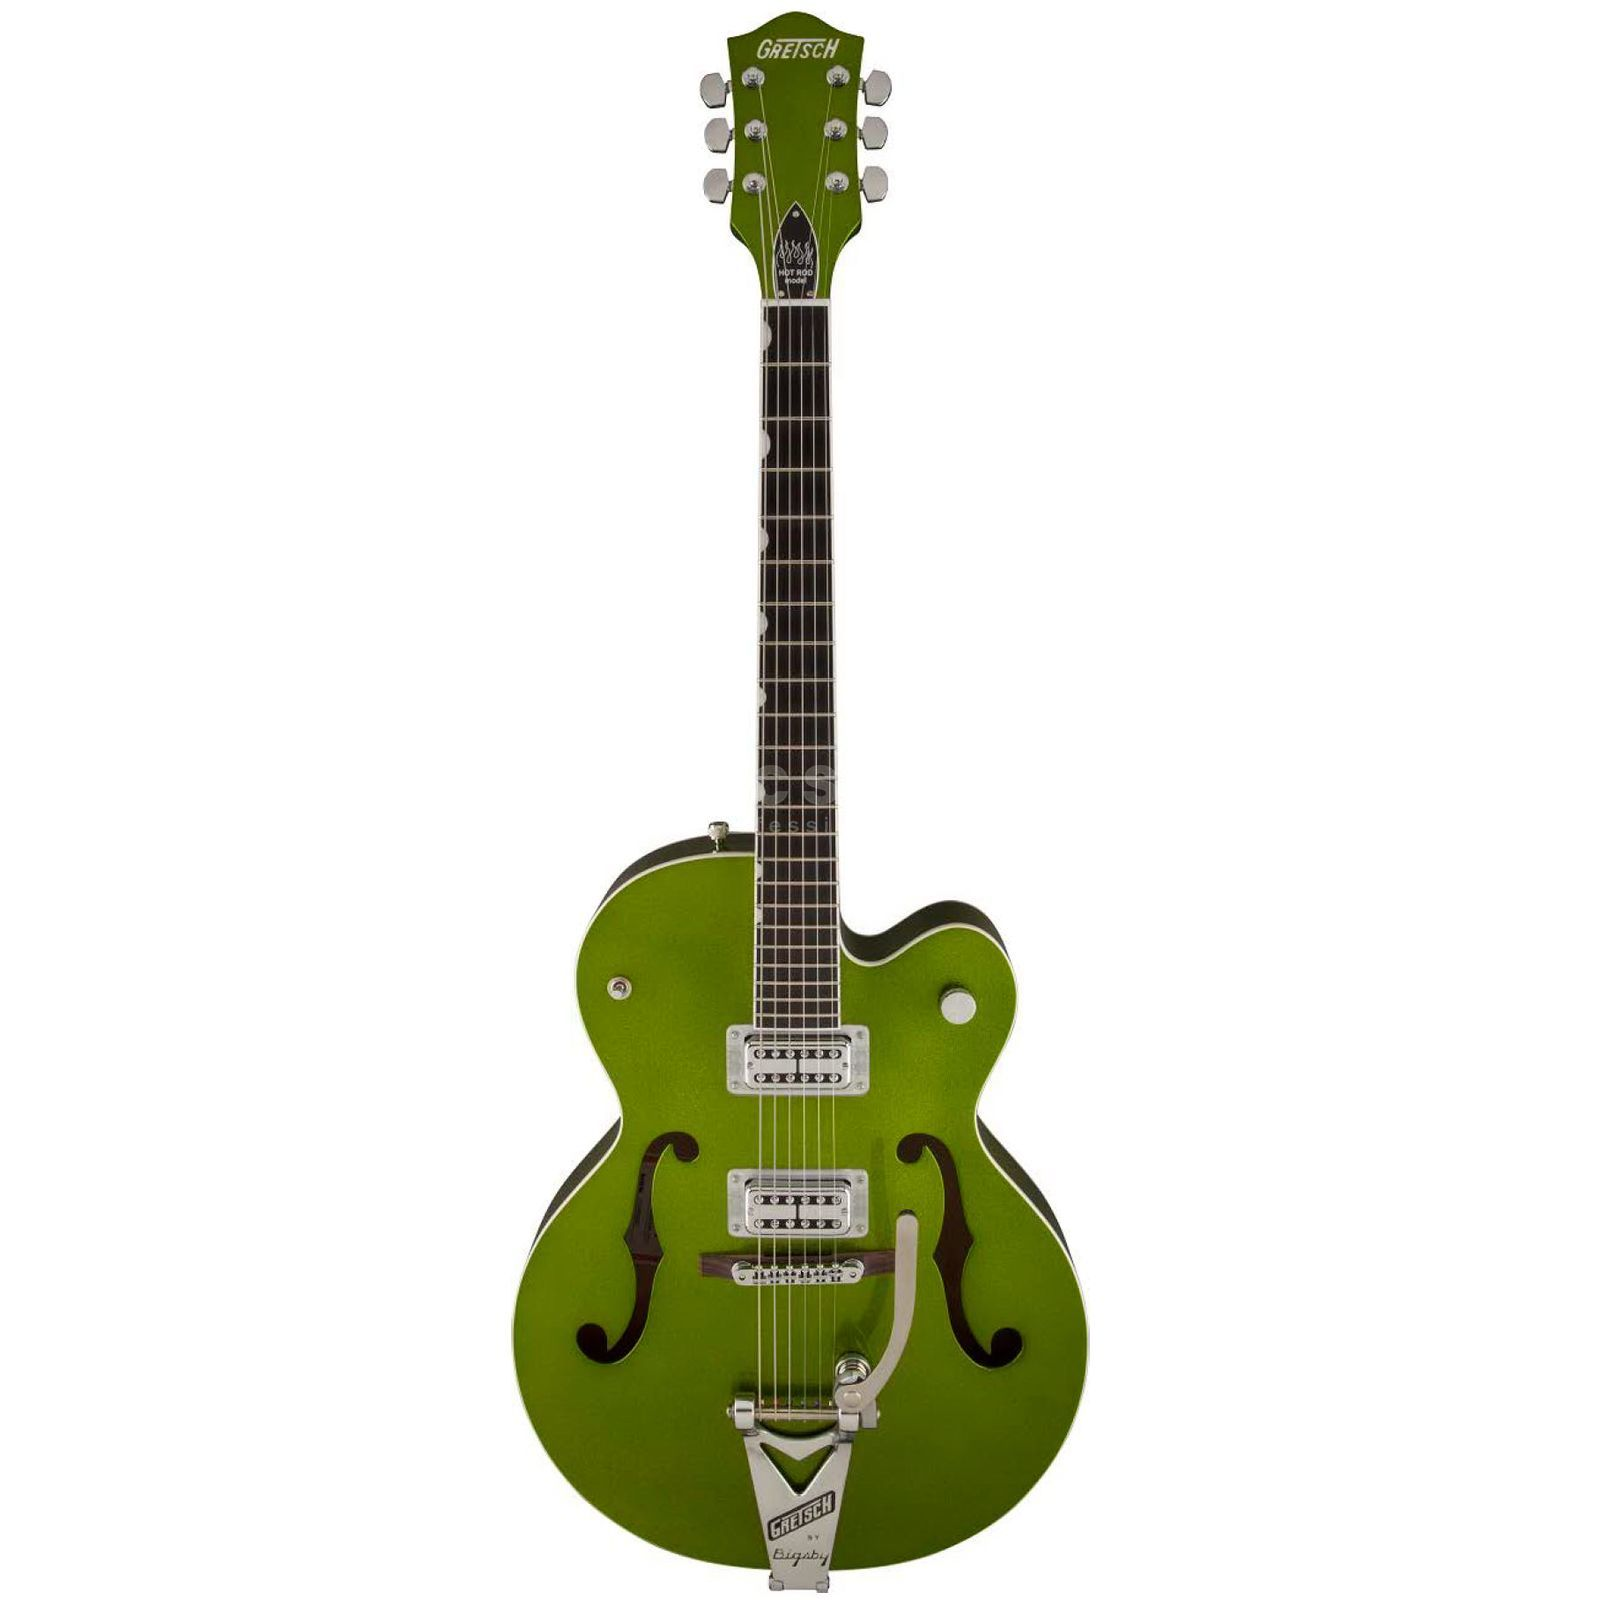 Gretsch G6120SH Brian Setzer Hot Rod Green Sparkle Produktbild